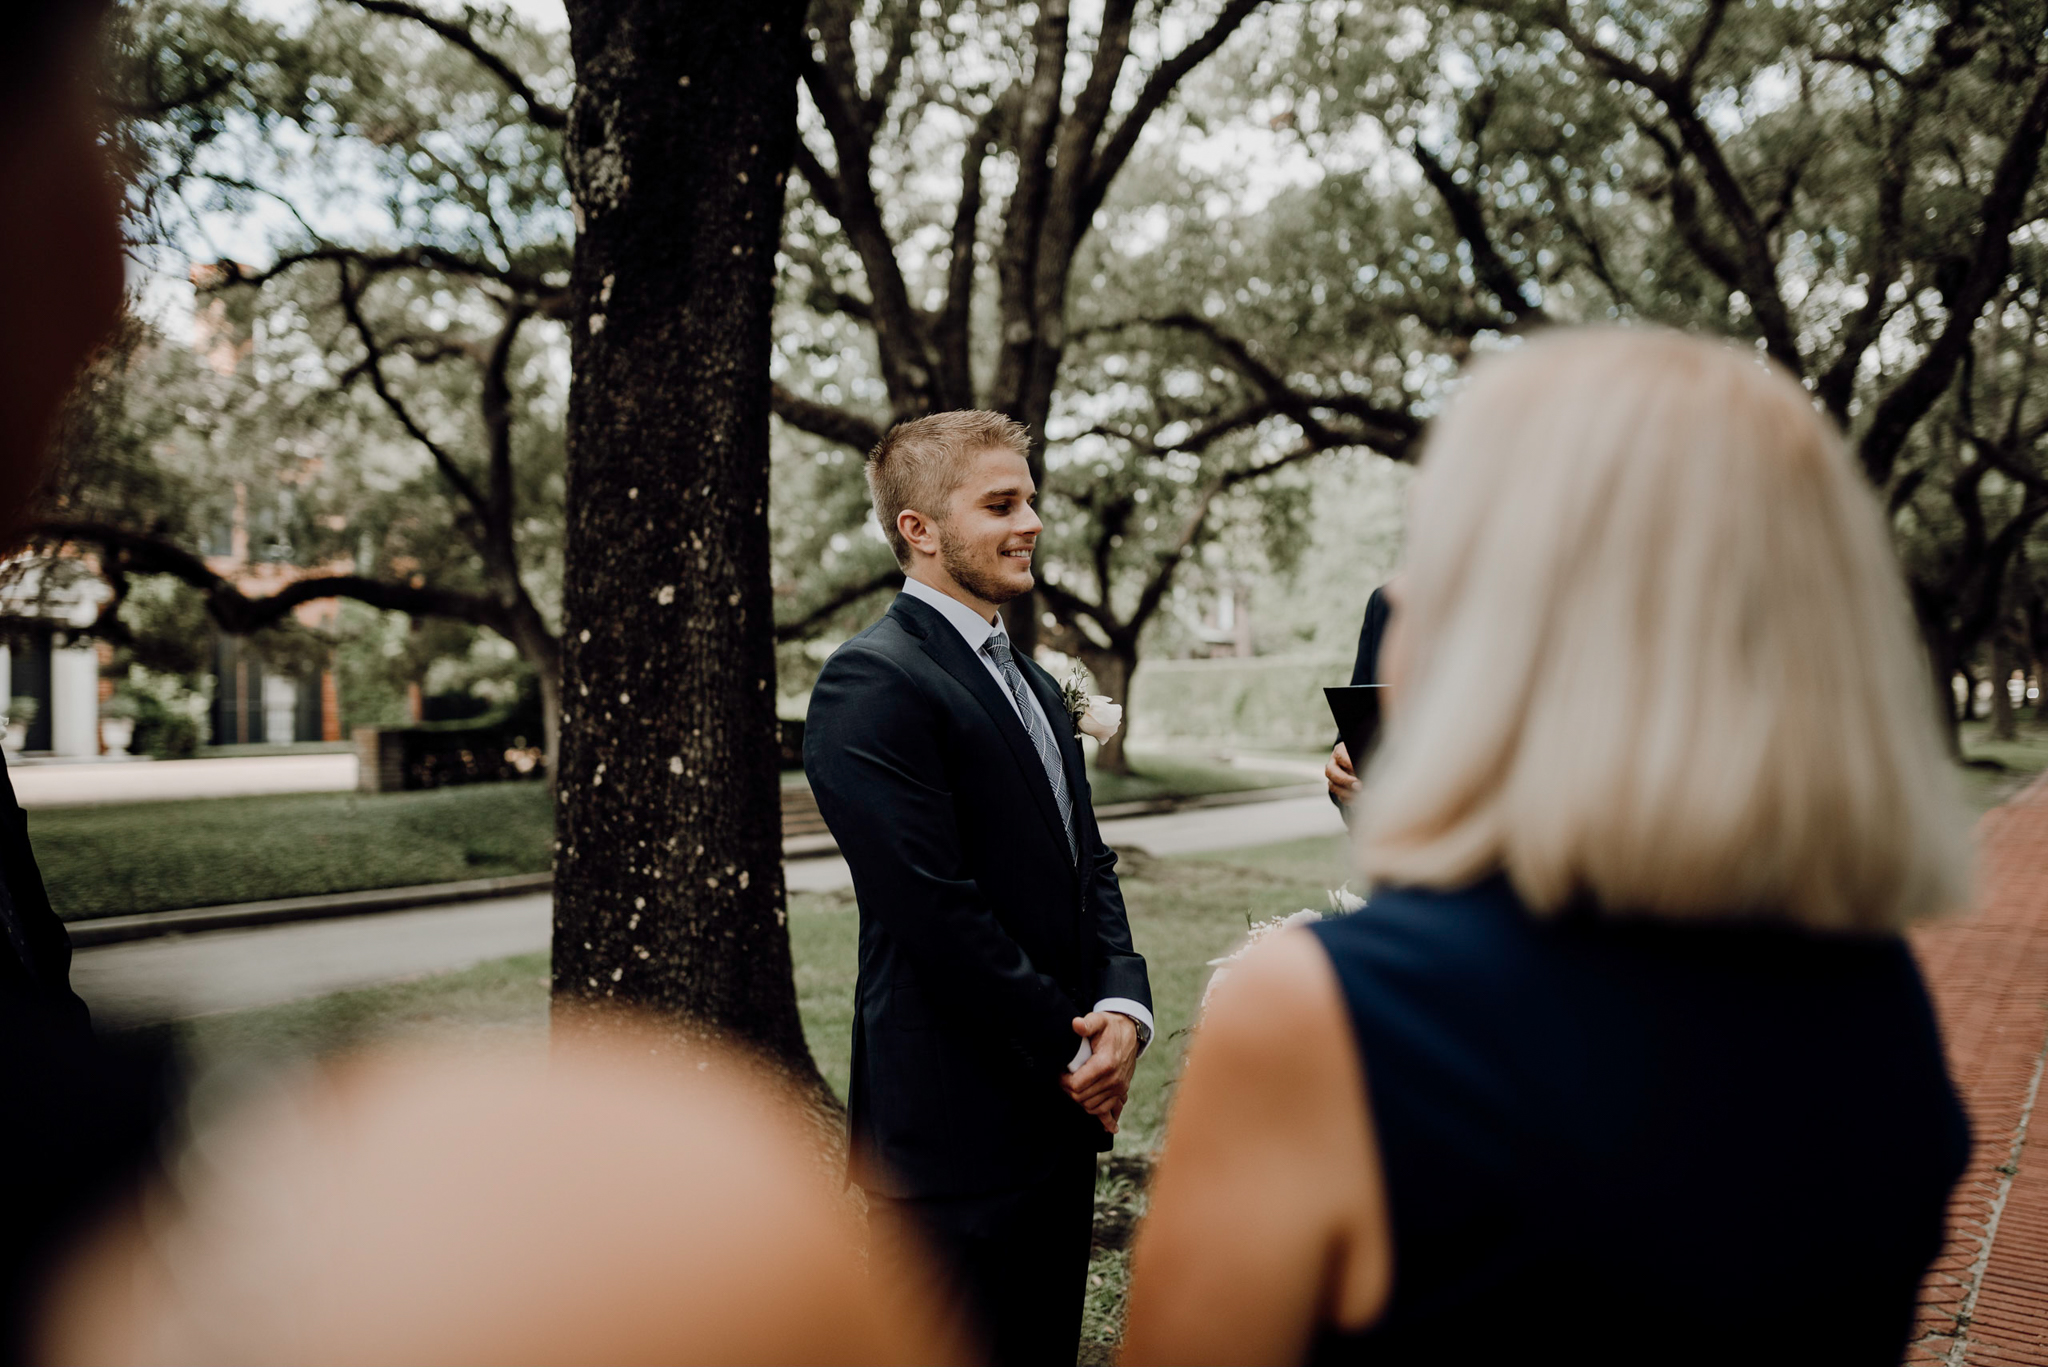 Houston Wedding Photographer-North Blvd Intimate Elopement- Houston Wedding Photographer -Kristen Giles Photography-16.jpg